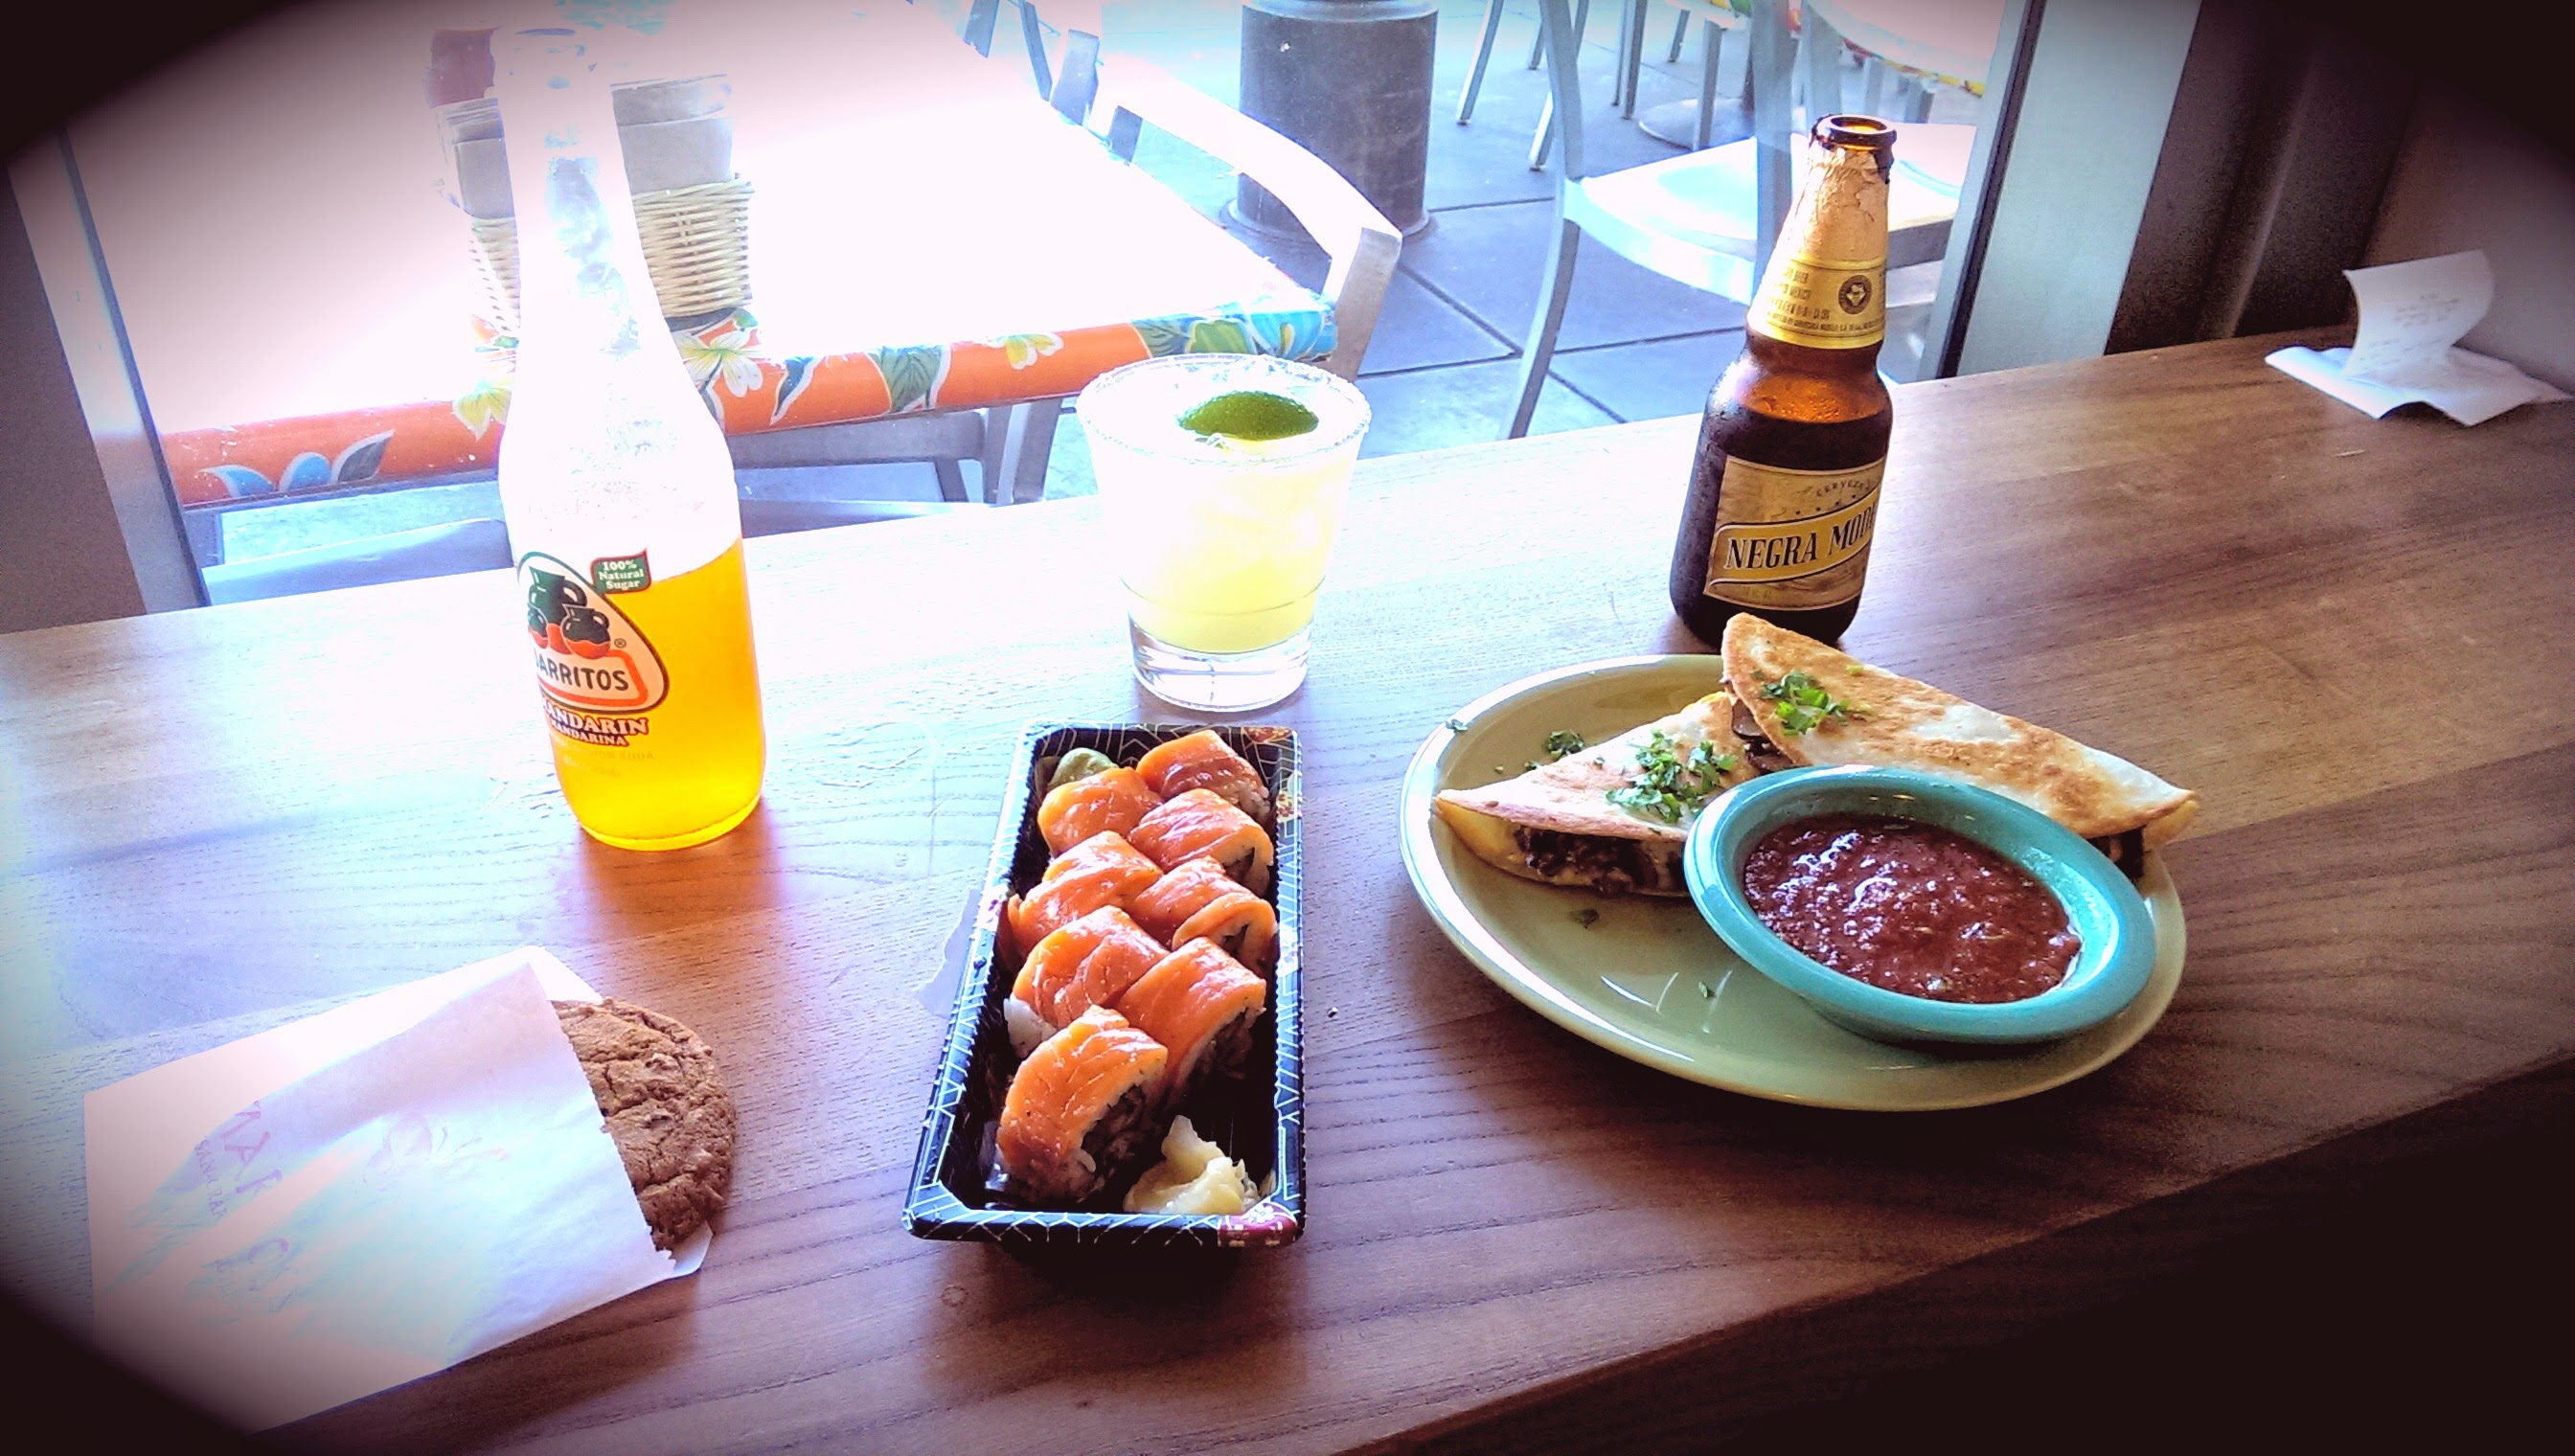 Fusion cuisine, that's a margarita with my sushi